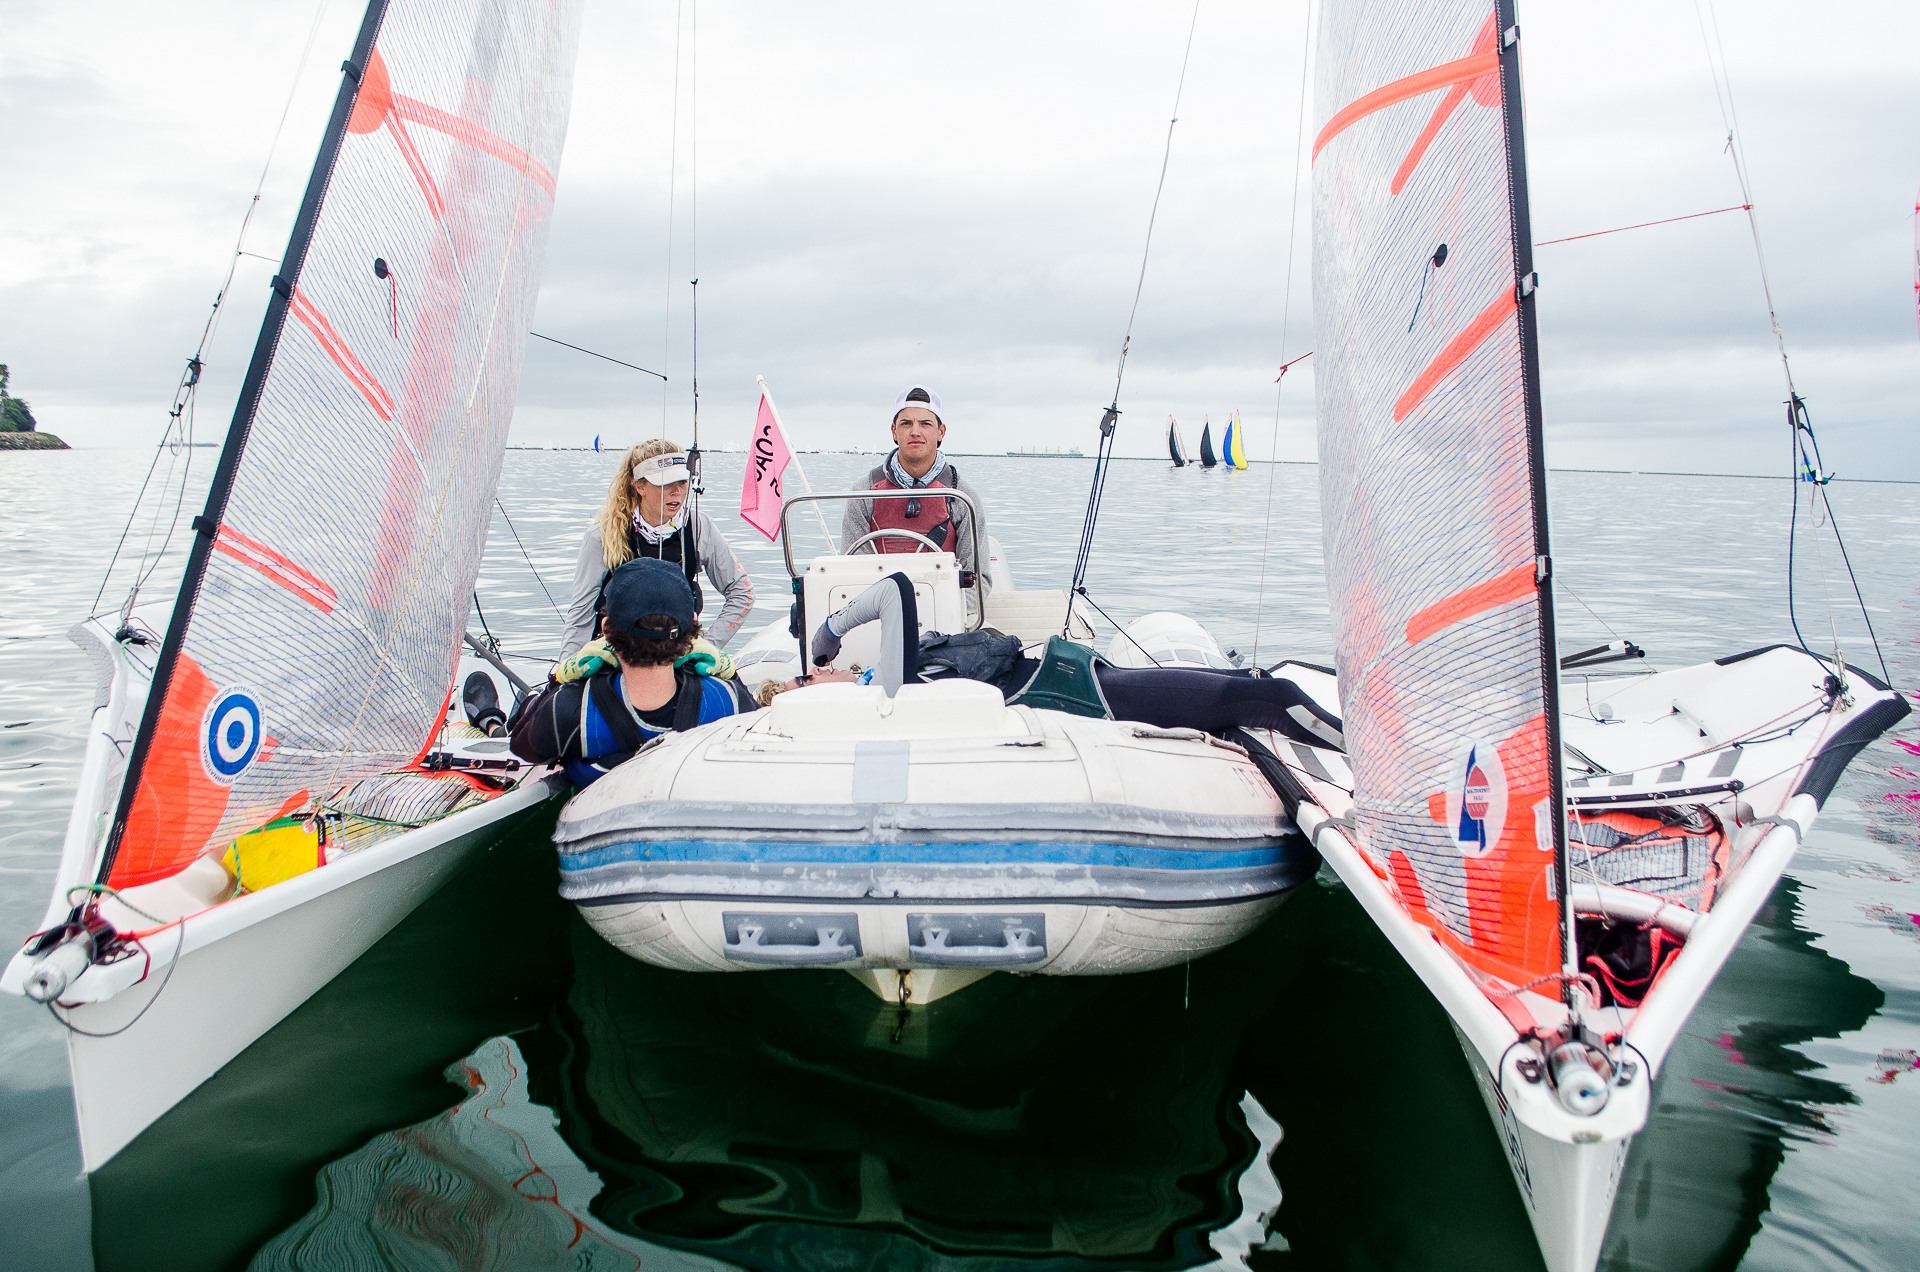 29er sailboats winged up on the coach boat with Coach Evan Heffernan